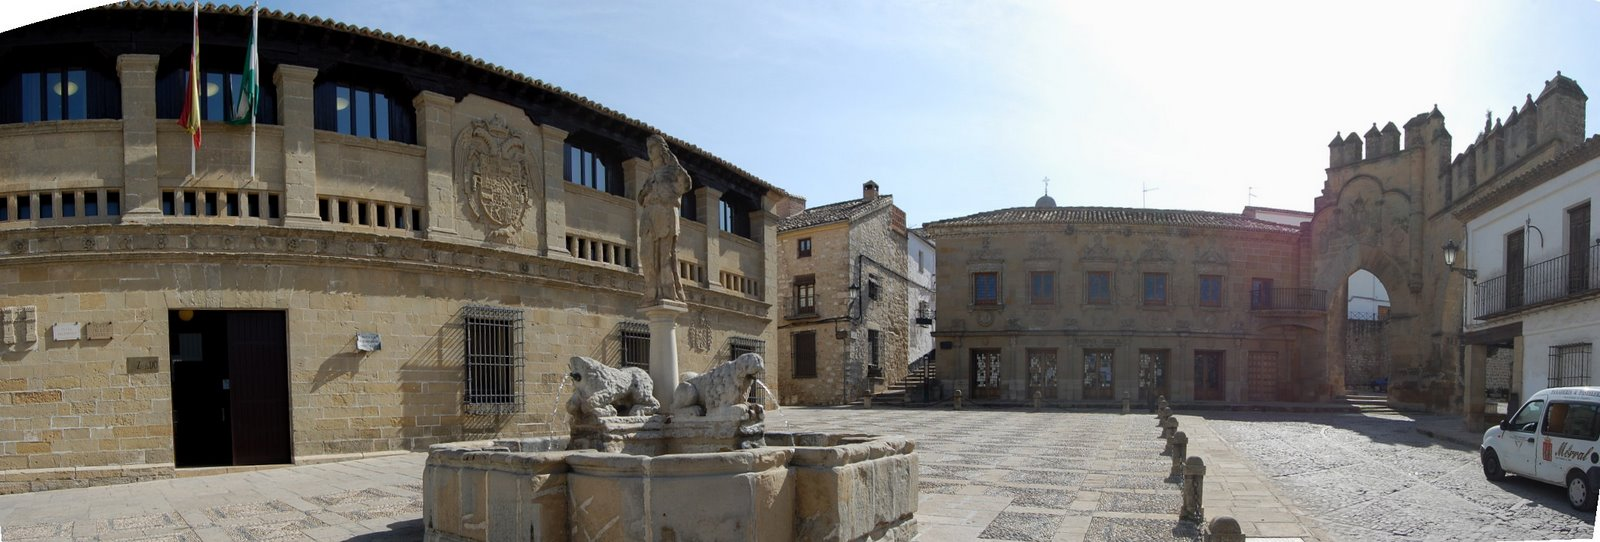 Baeza Spain  City pictures : Baeza Plaza del Populo